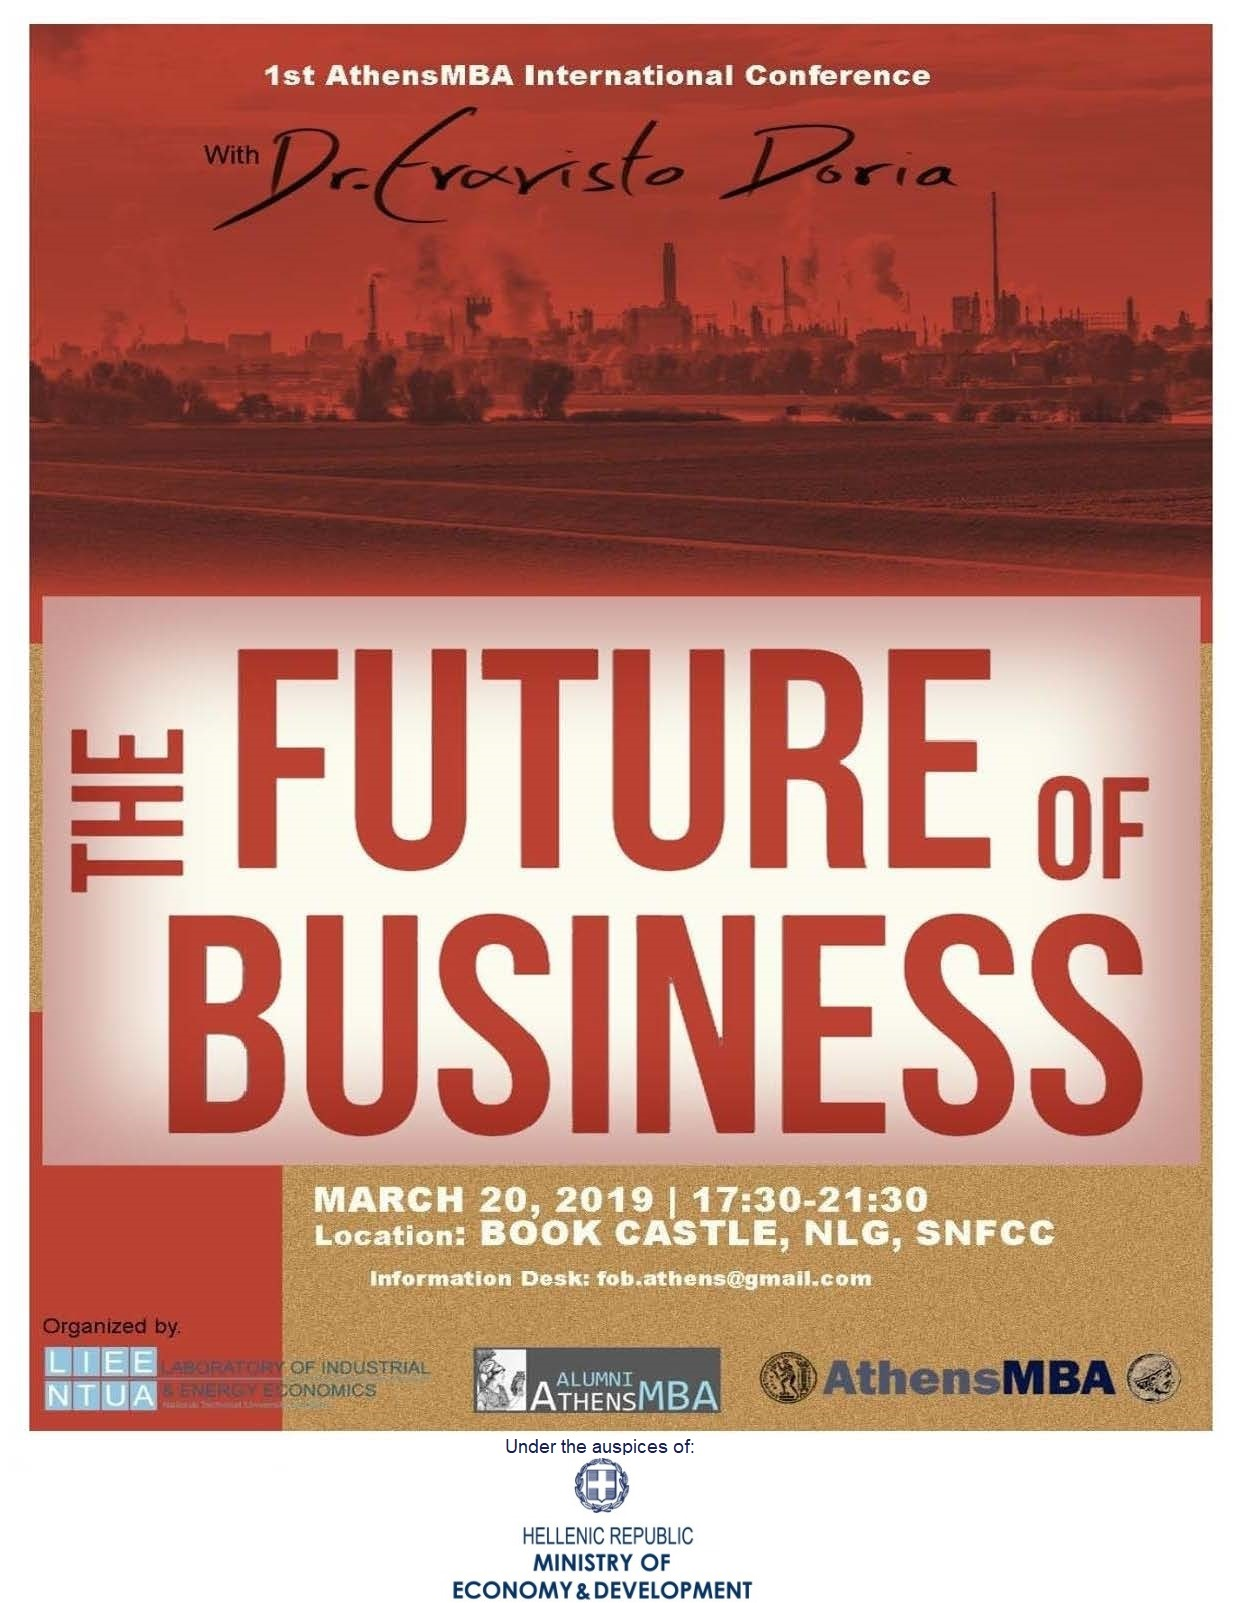 The future of business| 1st AthensMBA International Conference